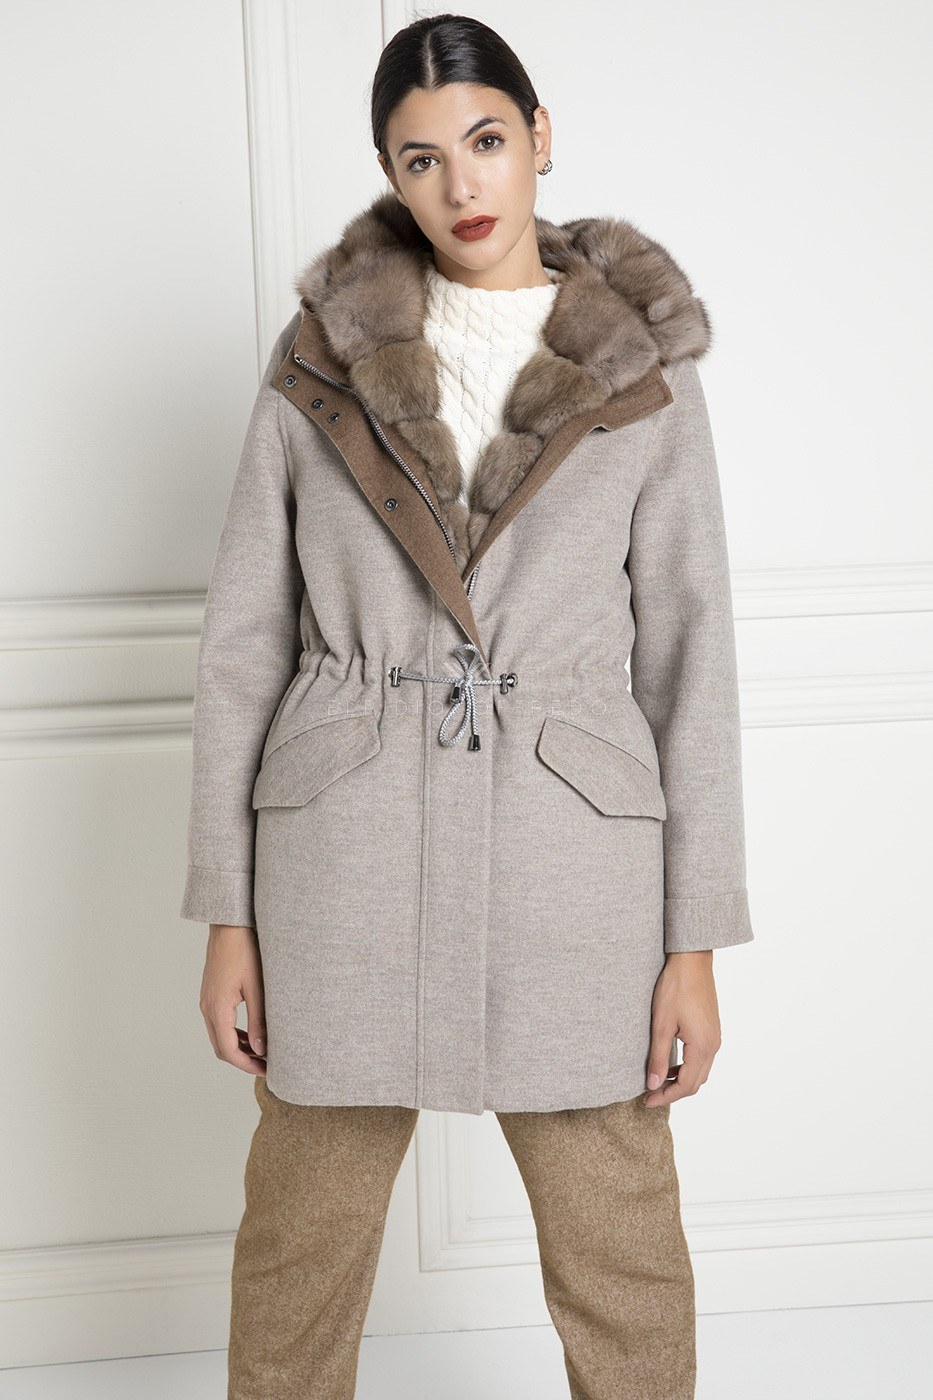 Cashmere Loro Piana Coat with Barguzinsky Russian Sable Fur Vest